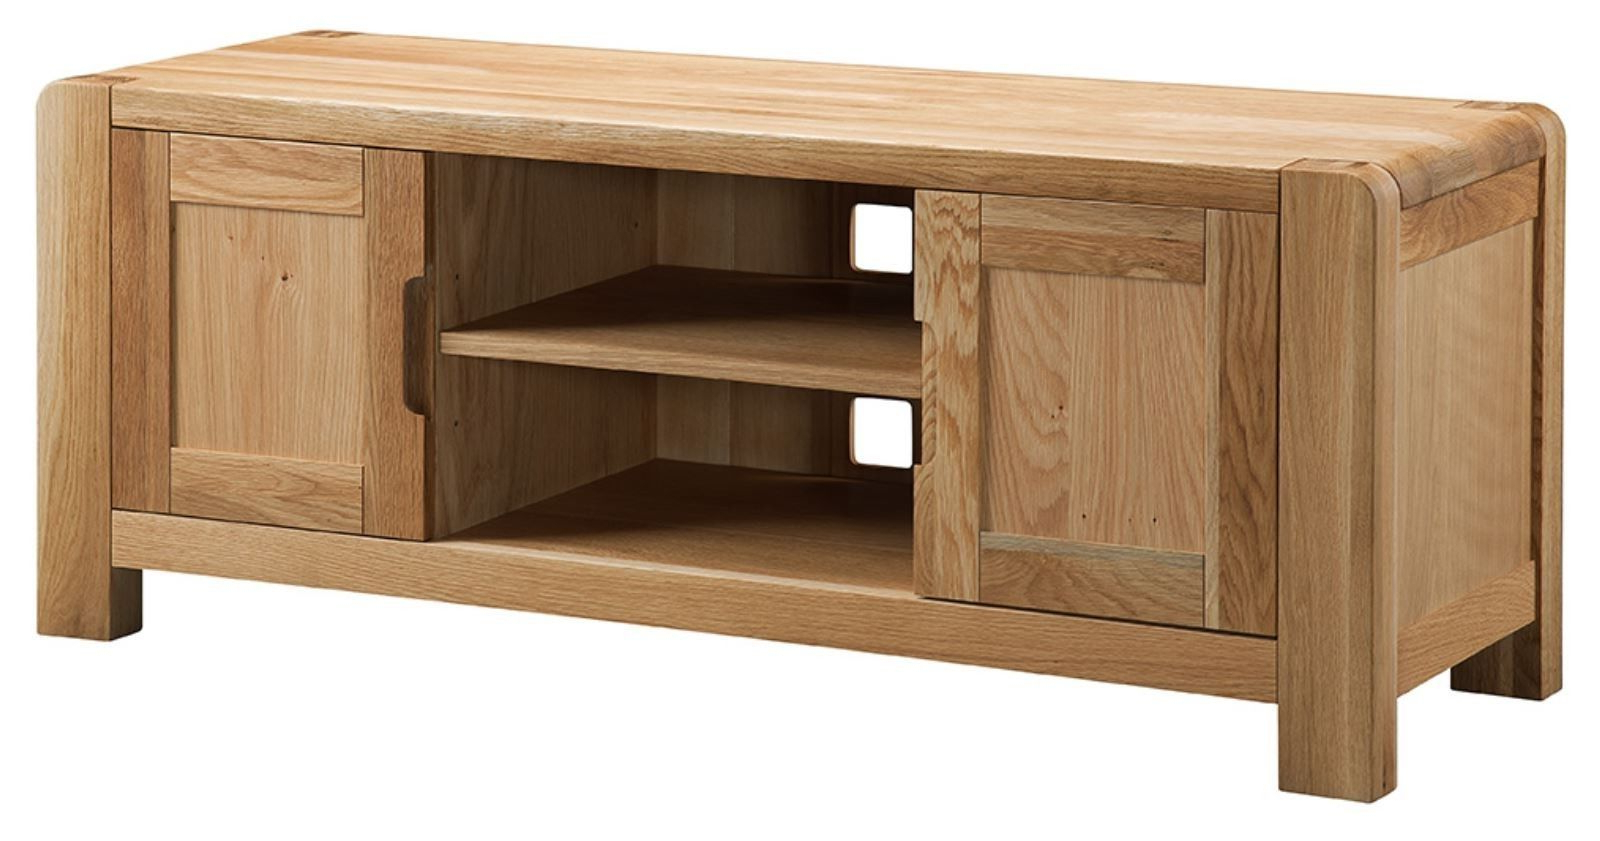 2018 Chunky Wood Tv Units Regarding Manor Solid Chunky Curved Oak Large Widescreen Lcd Plasma Tv Cabinet (View 1 of 20)